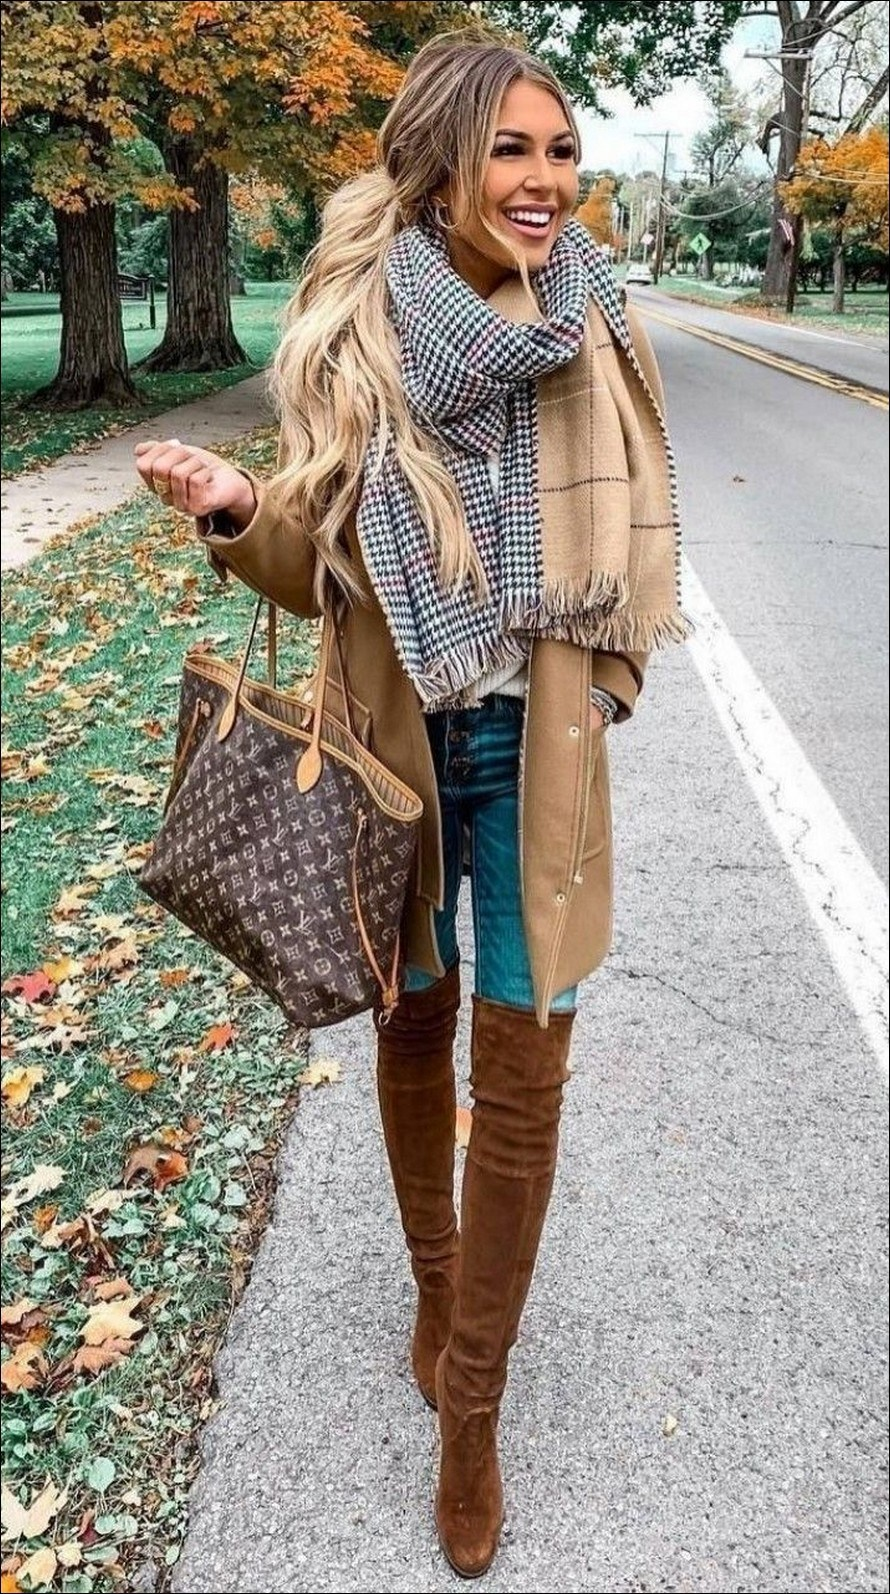 55+ lovely winter dress ideas for teens ideas 30